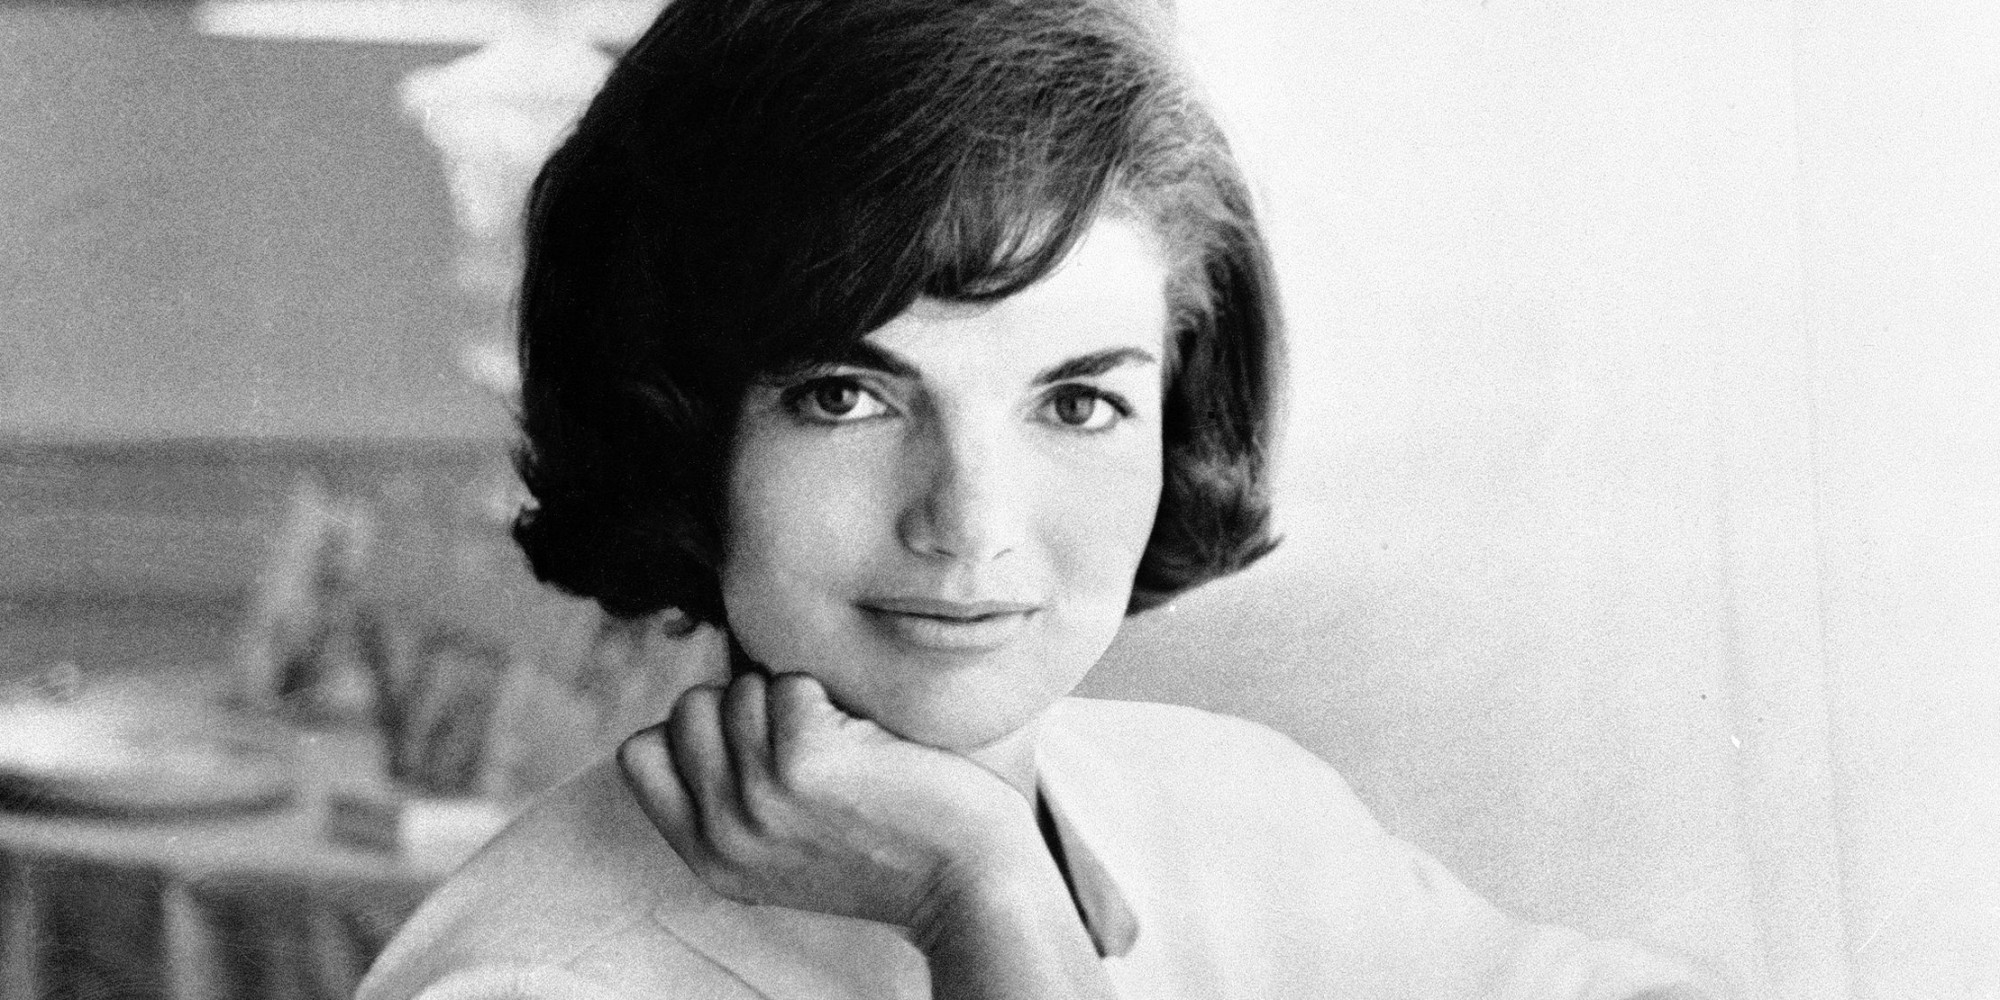 Famous Women in History - Jacqueline Kennedy - Jackie O - In this photo provided by the White House, first lady Jacqueline Kennedy is pictured in the first family's White House living quarters, June 19, 1961. (AP Photo/White House/Mark Shaw) - Important women in NYC history famous women in history Things To Do in NYC: Finding New York City's Famous Women in History Jacqueline Kennedy Onassis